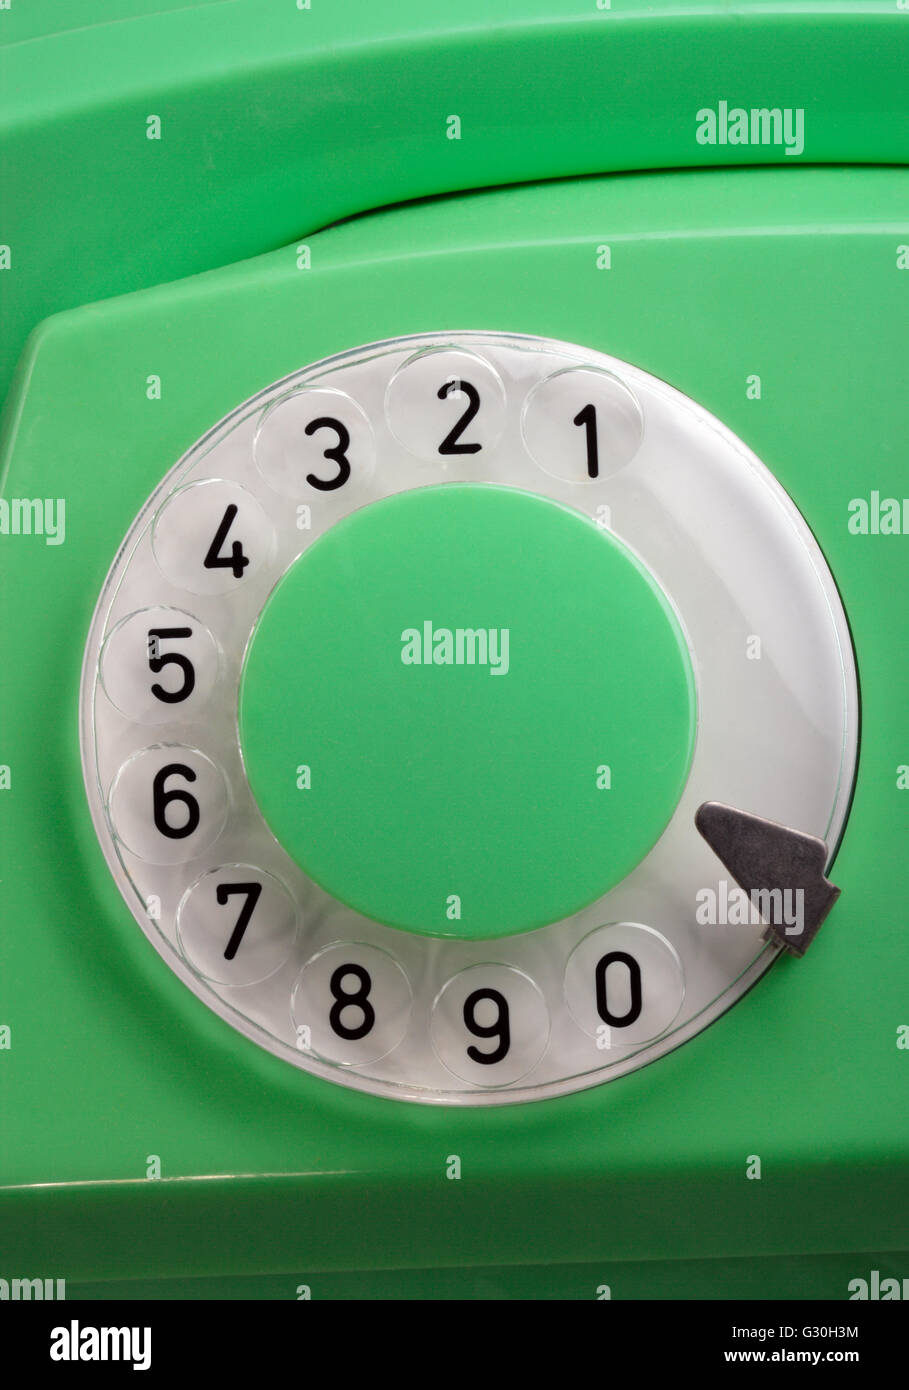 Old Green Rotary Telephone - Stock Image